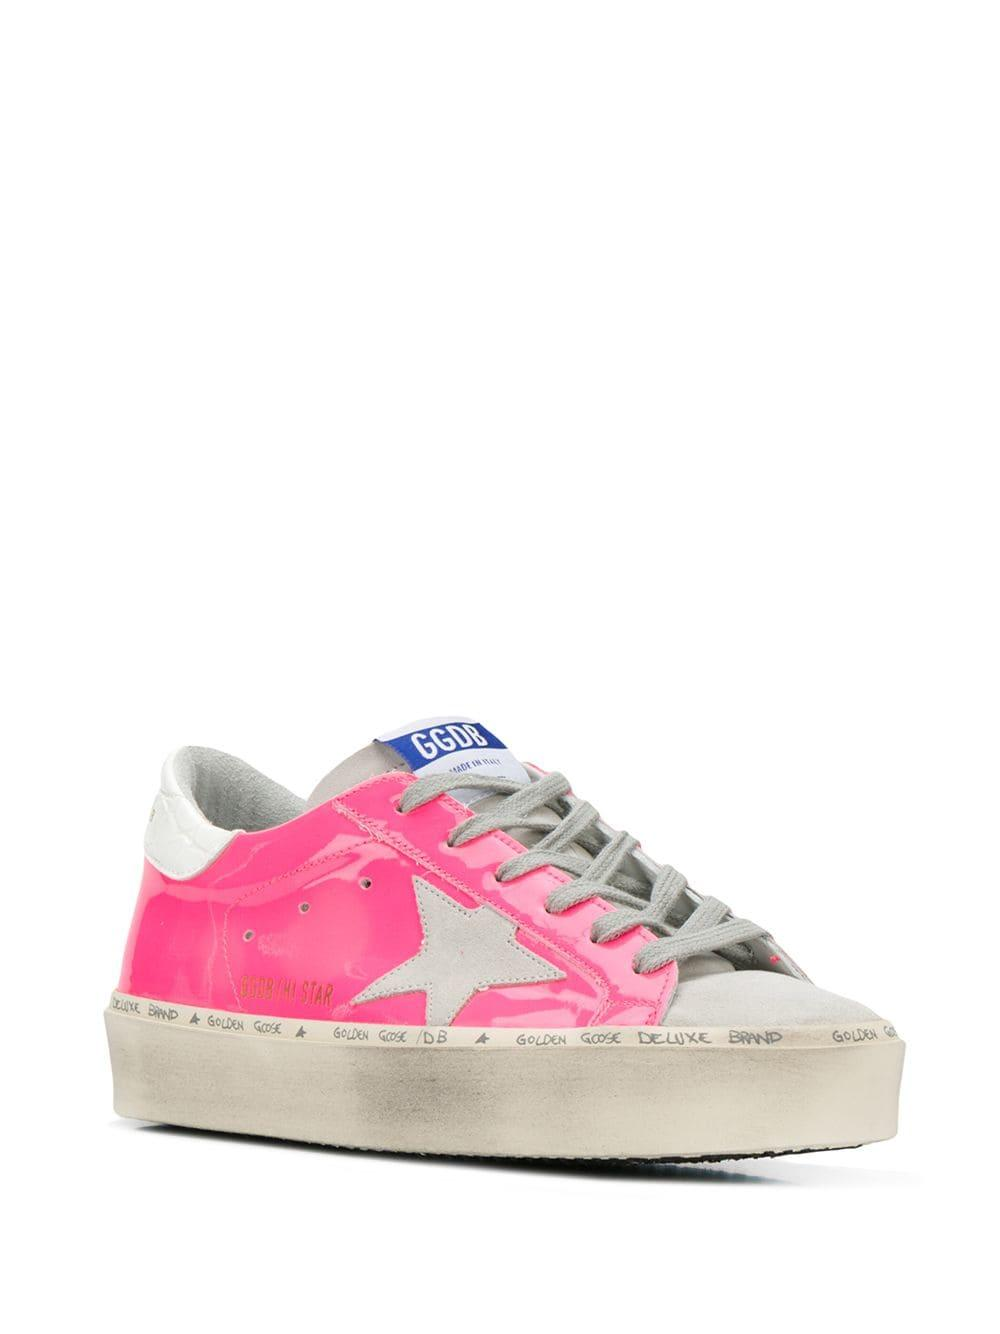 29e6fe33a8d9 Lyst - Golden Goose Deluxe Brand Superstar Sneakers in Pink